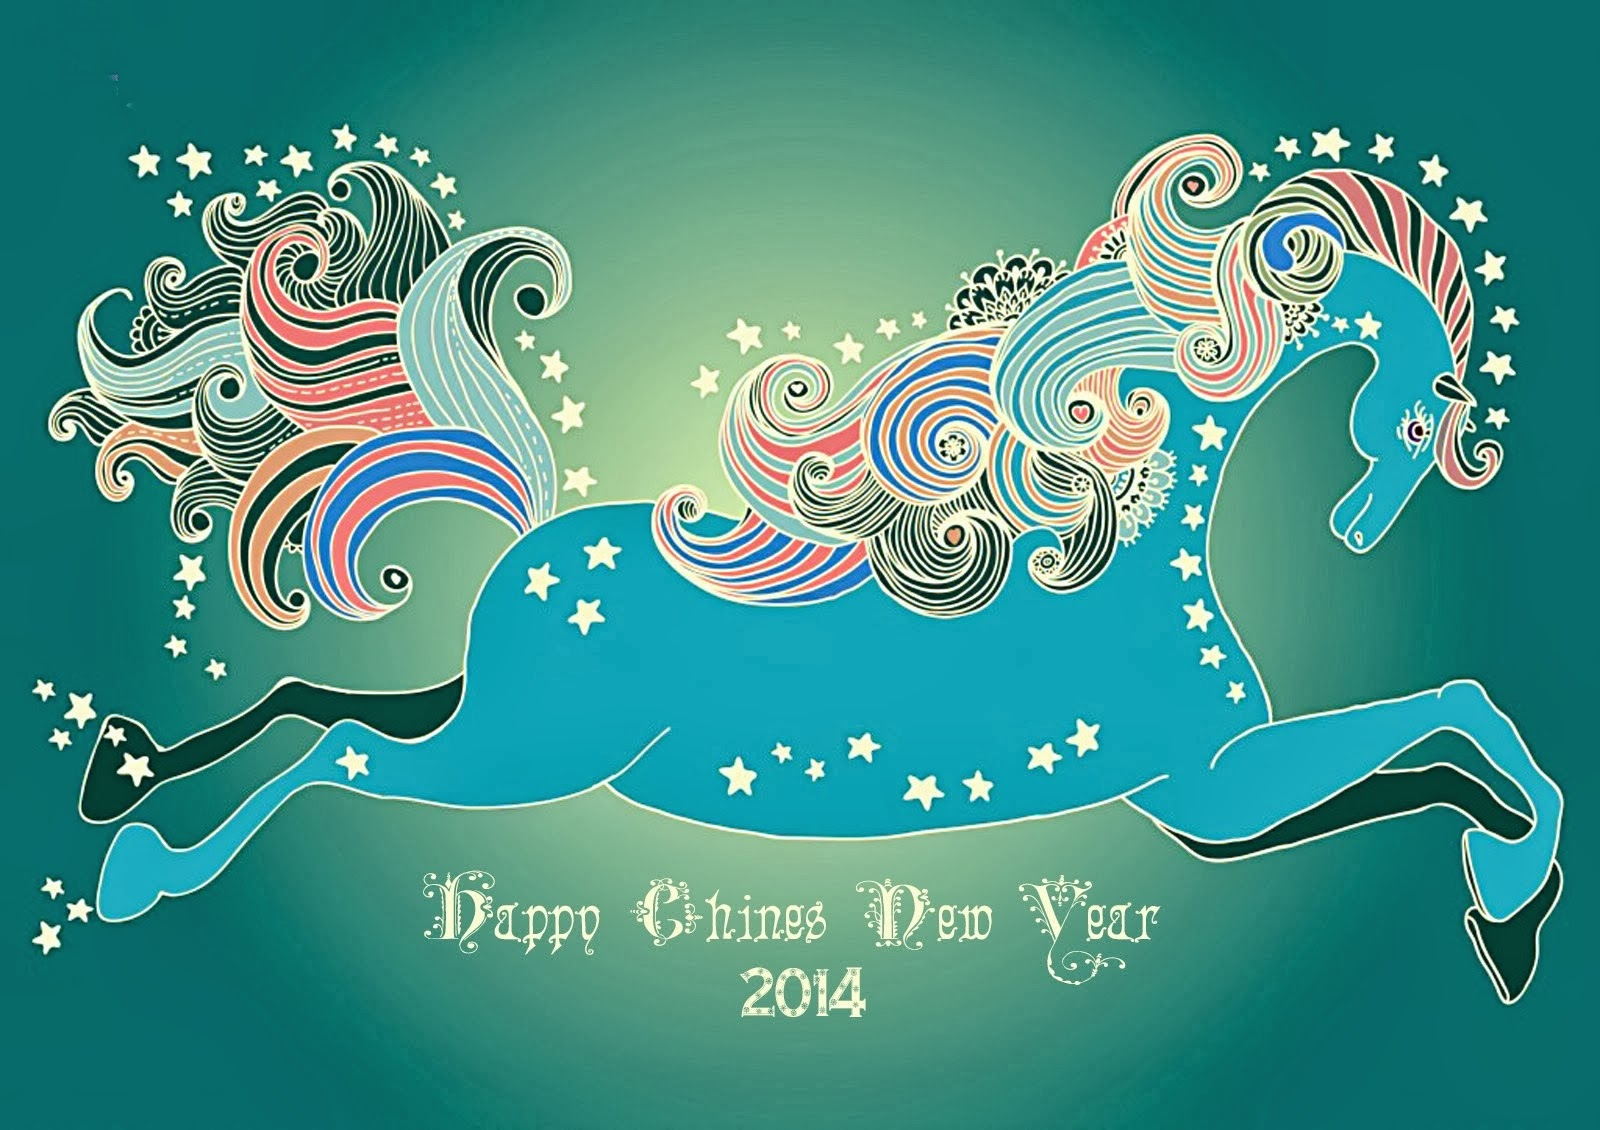 Happy Chinese New Year 2014.8 Happy Chinese New Year Greetings Message Sample 2014